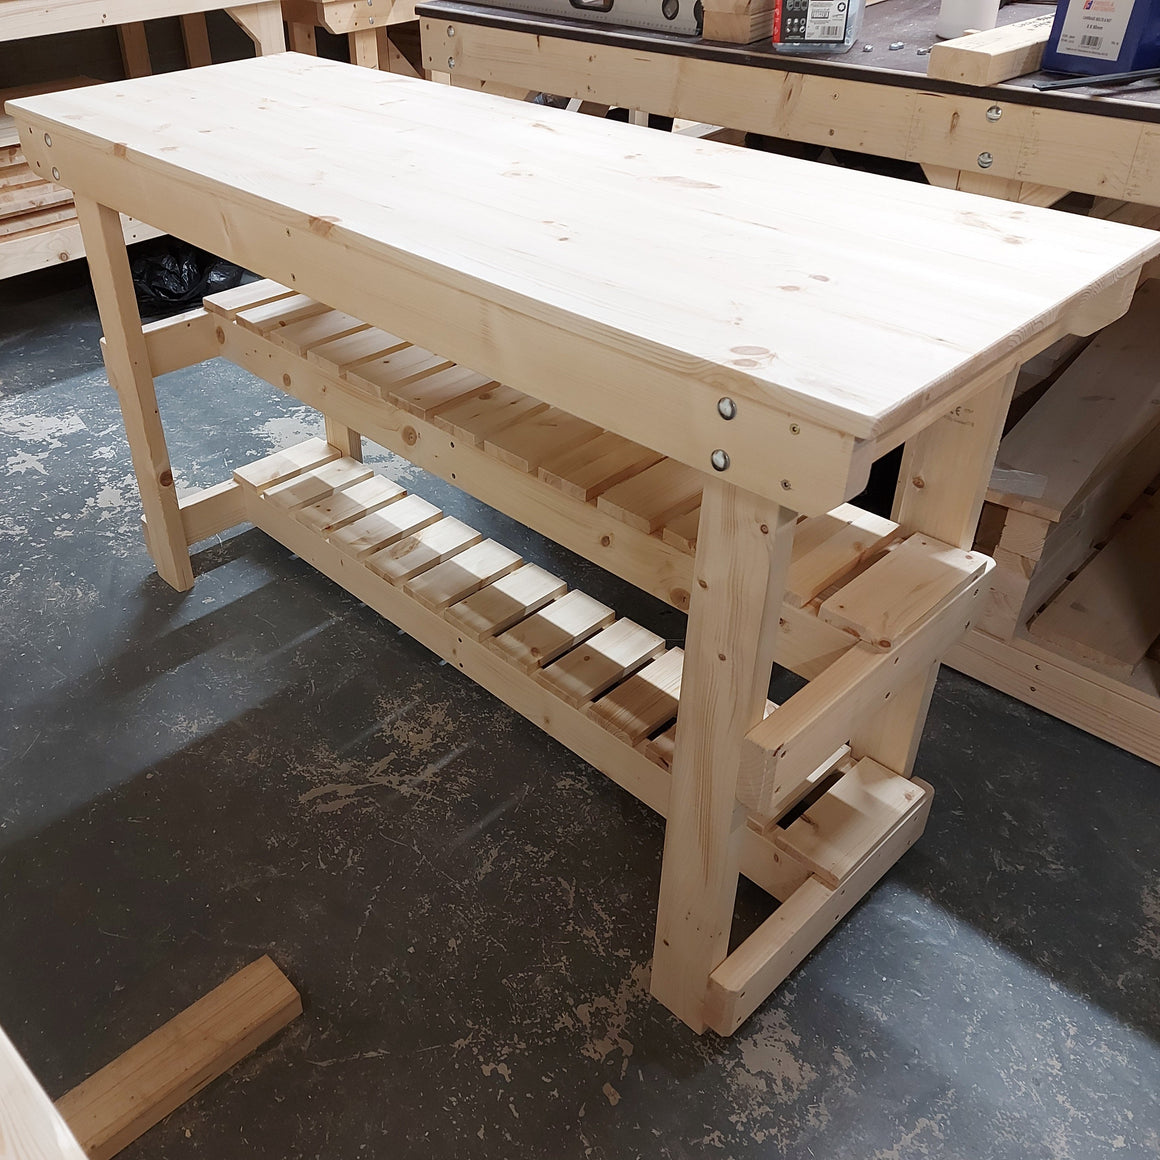 wooden workbench with recessed shelf